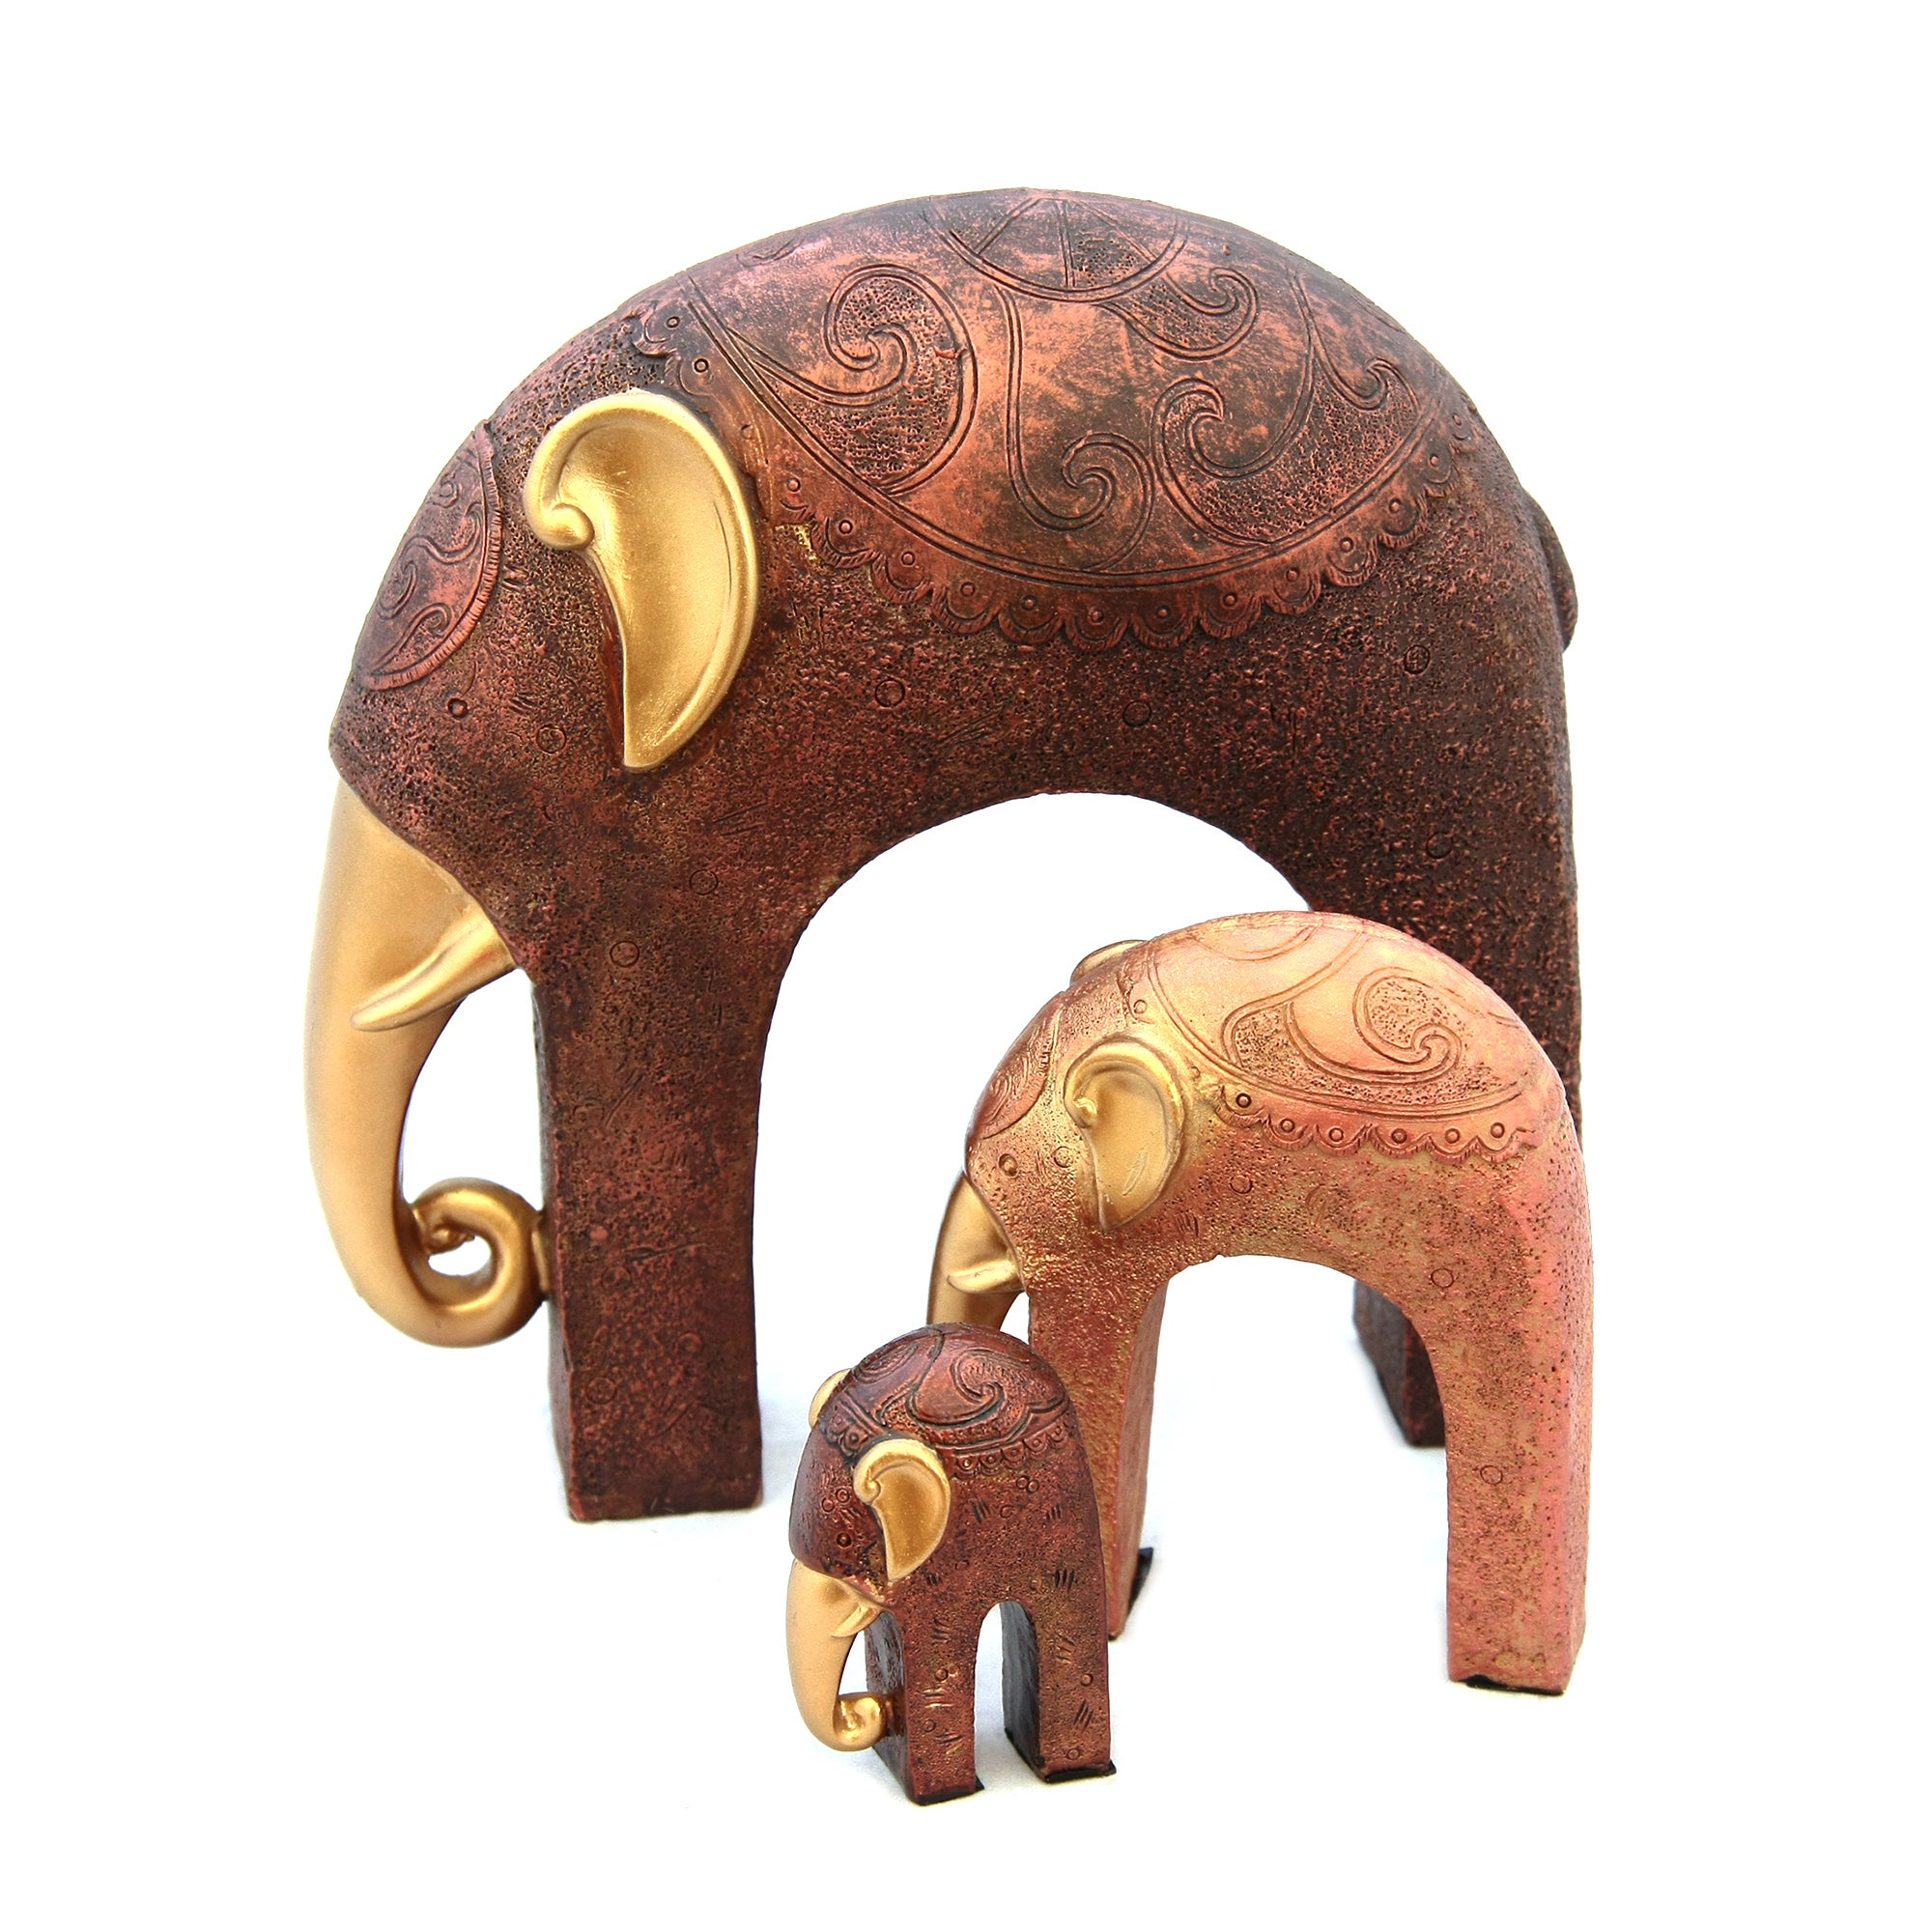 Creme Caramel Set of 3 Elephant Ornaments